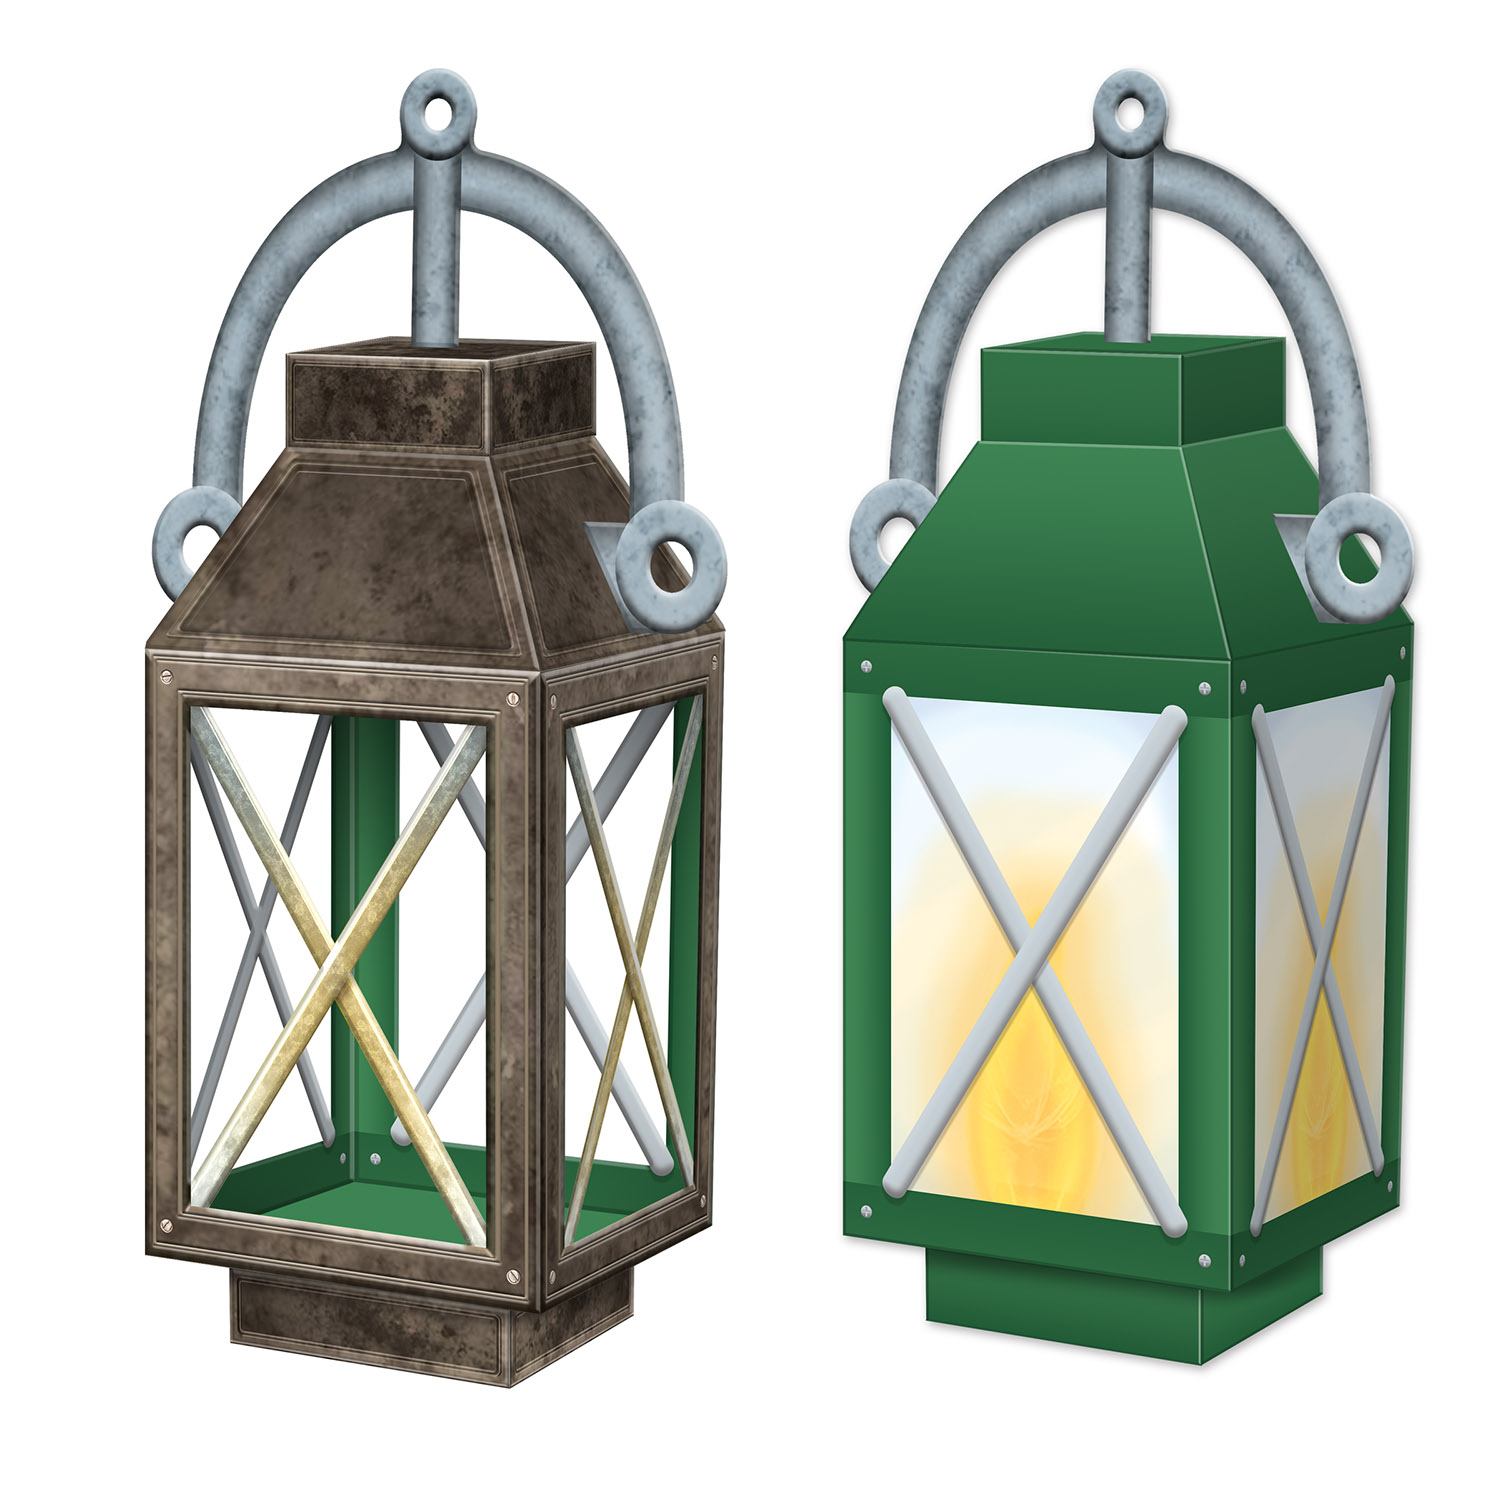 3-D Lantern Centerpiece (Pack of 12) 3-D Lantern Centerpiece, wild west, cowboy, new years eve, decoration, lantern, centerpiece, wholesale, inexpensive, bulk